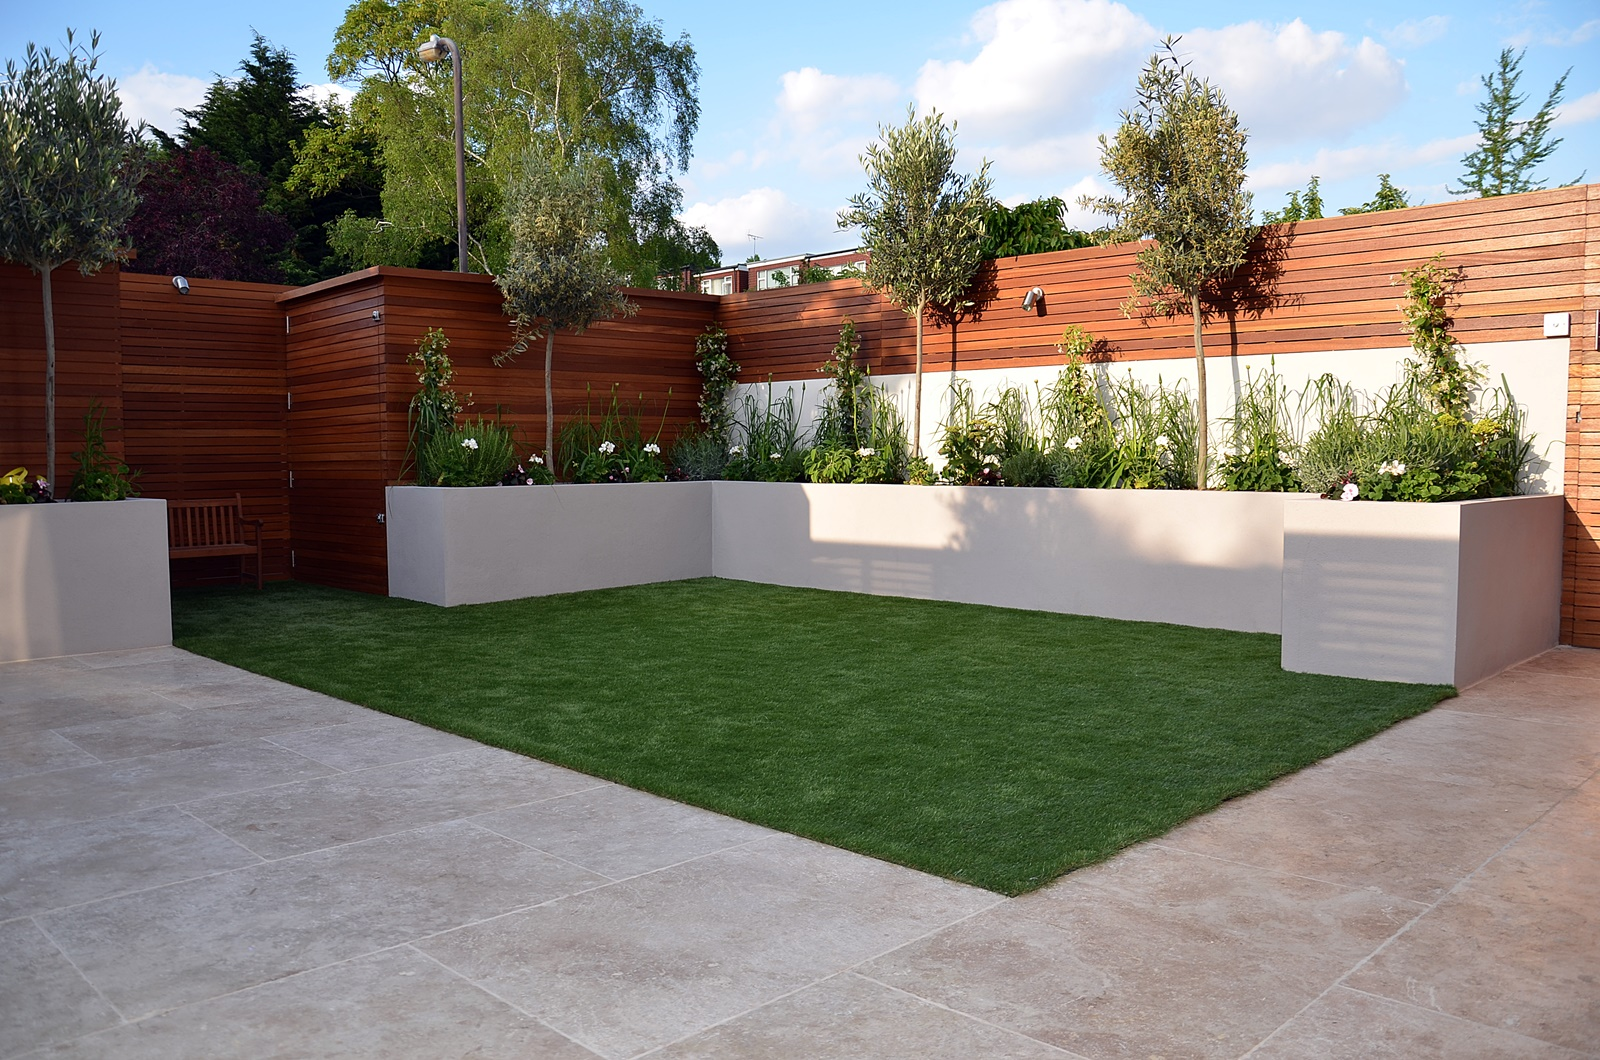 Modern garden design fulham chelsea clapham battersea for Garden design ideas